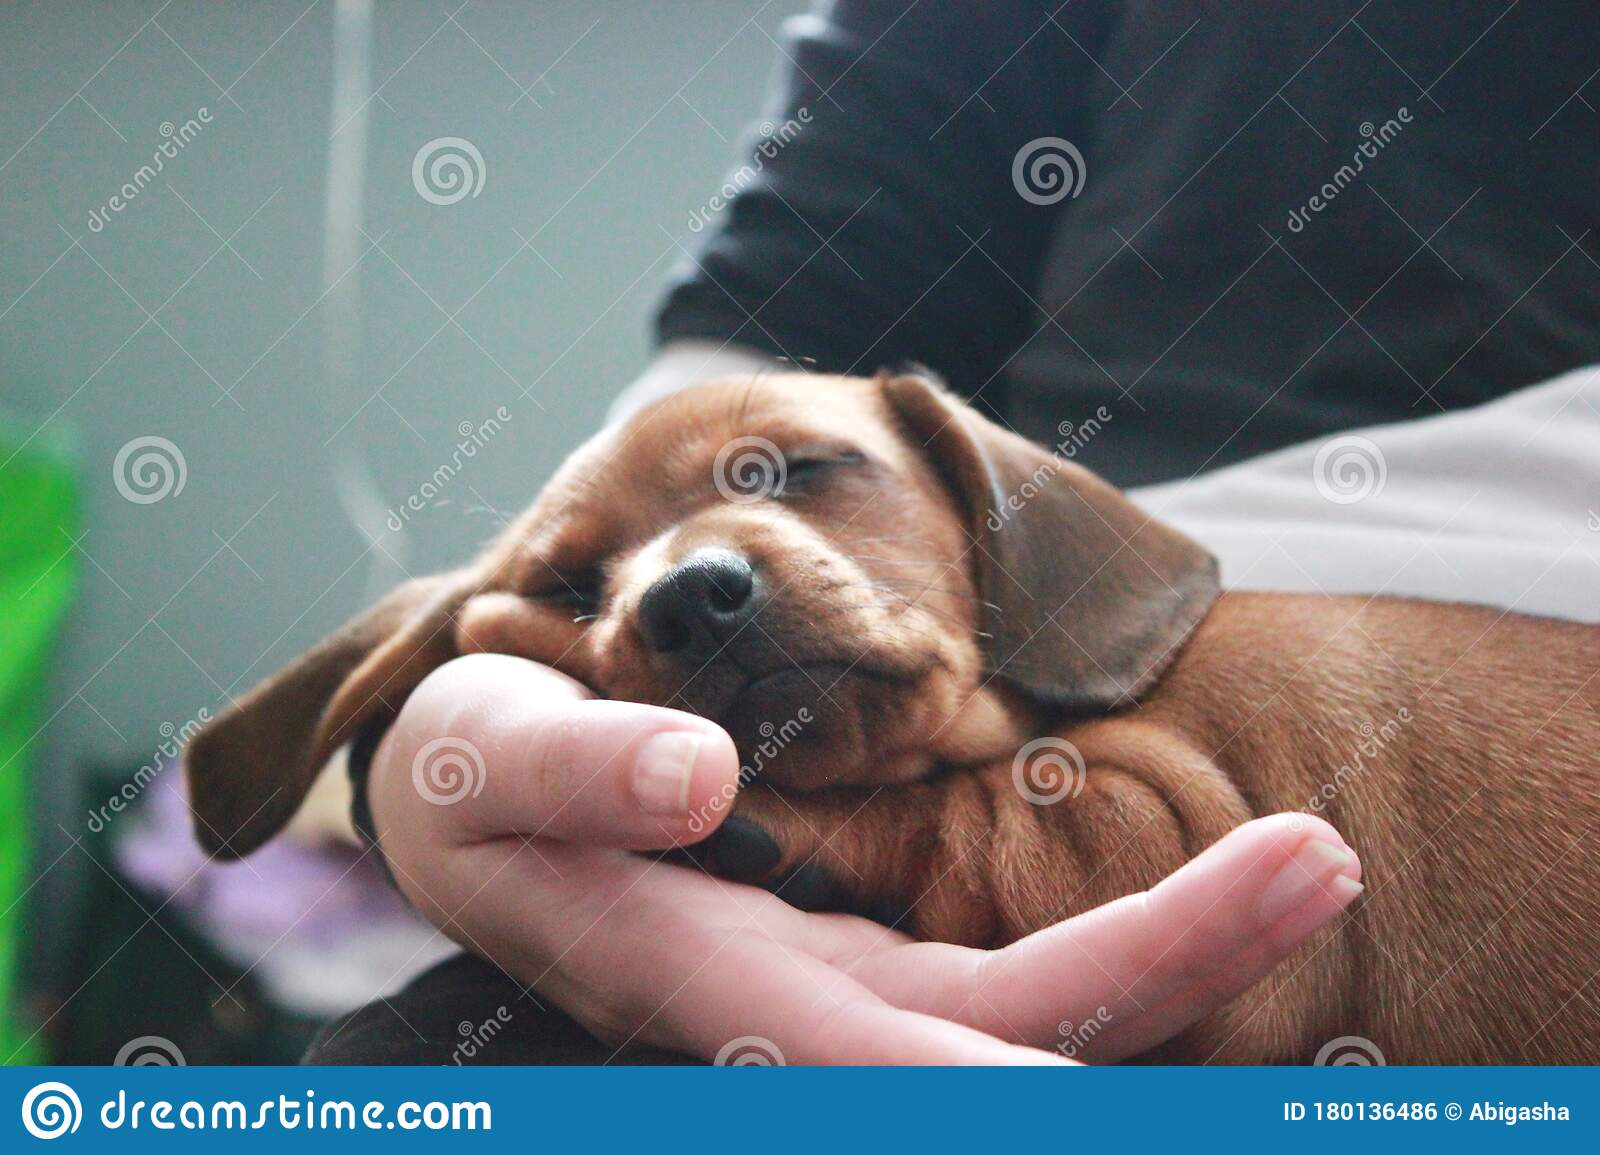 Cute Dachshund Puppy Sleeping On Human Knees Stock Photo Image Of Adorable Furniture 180136486